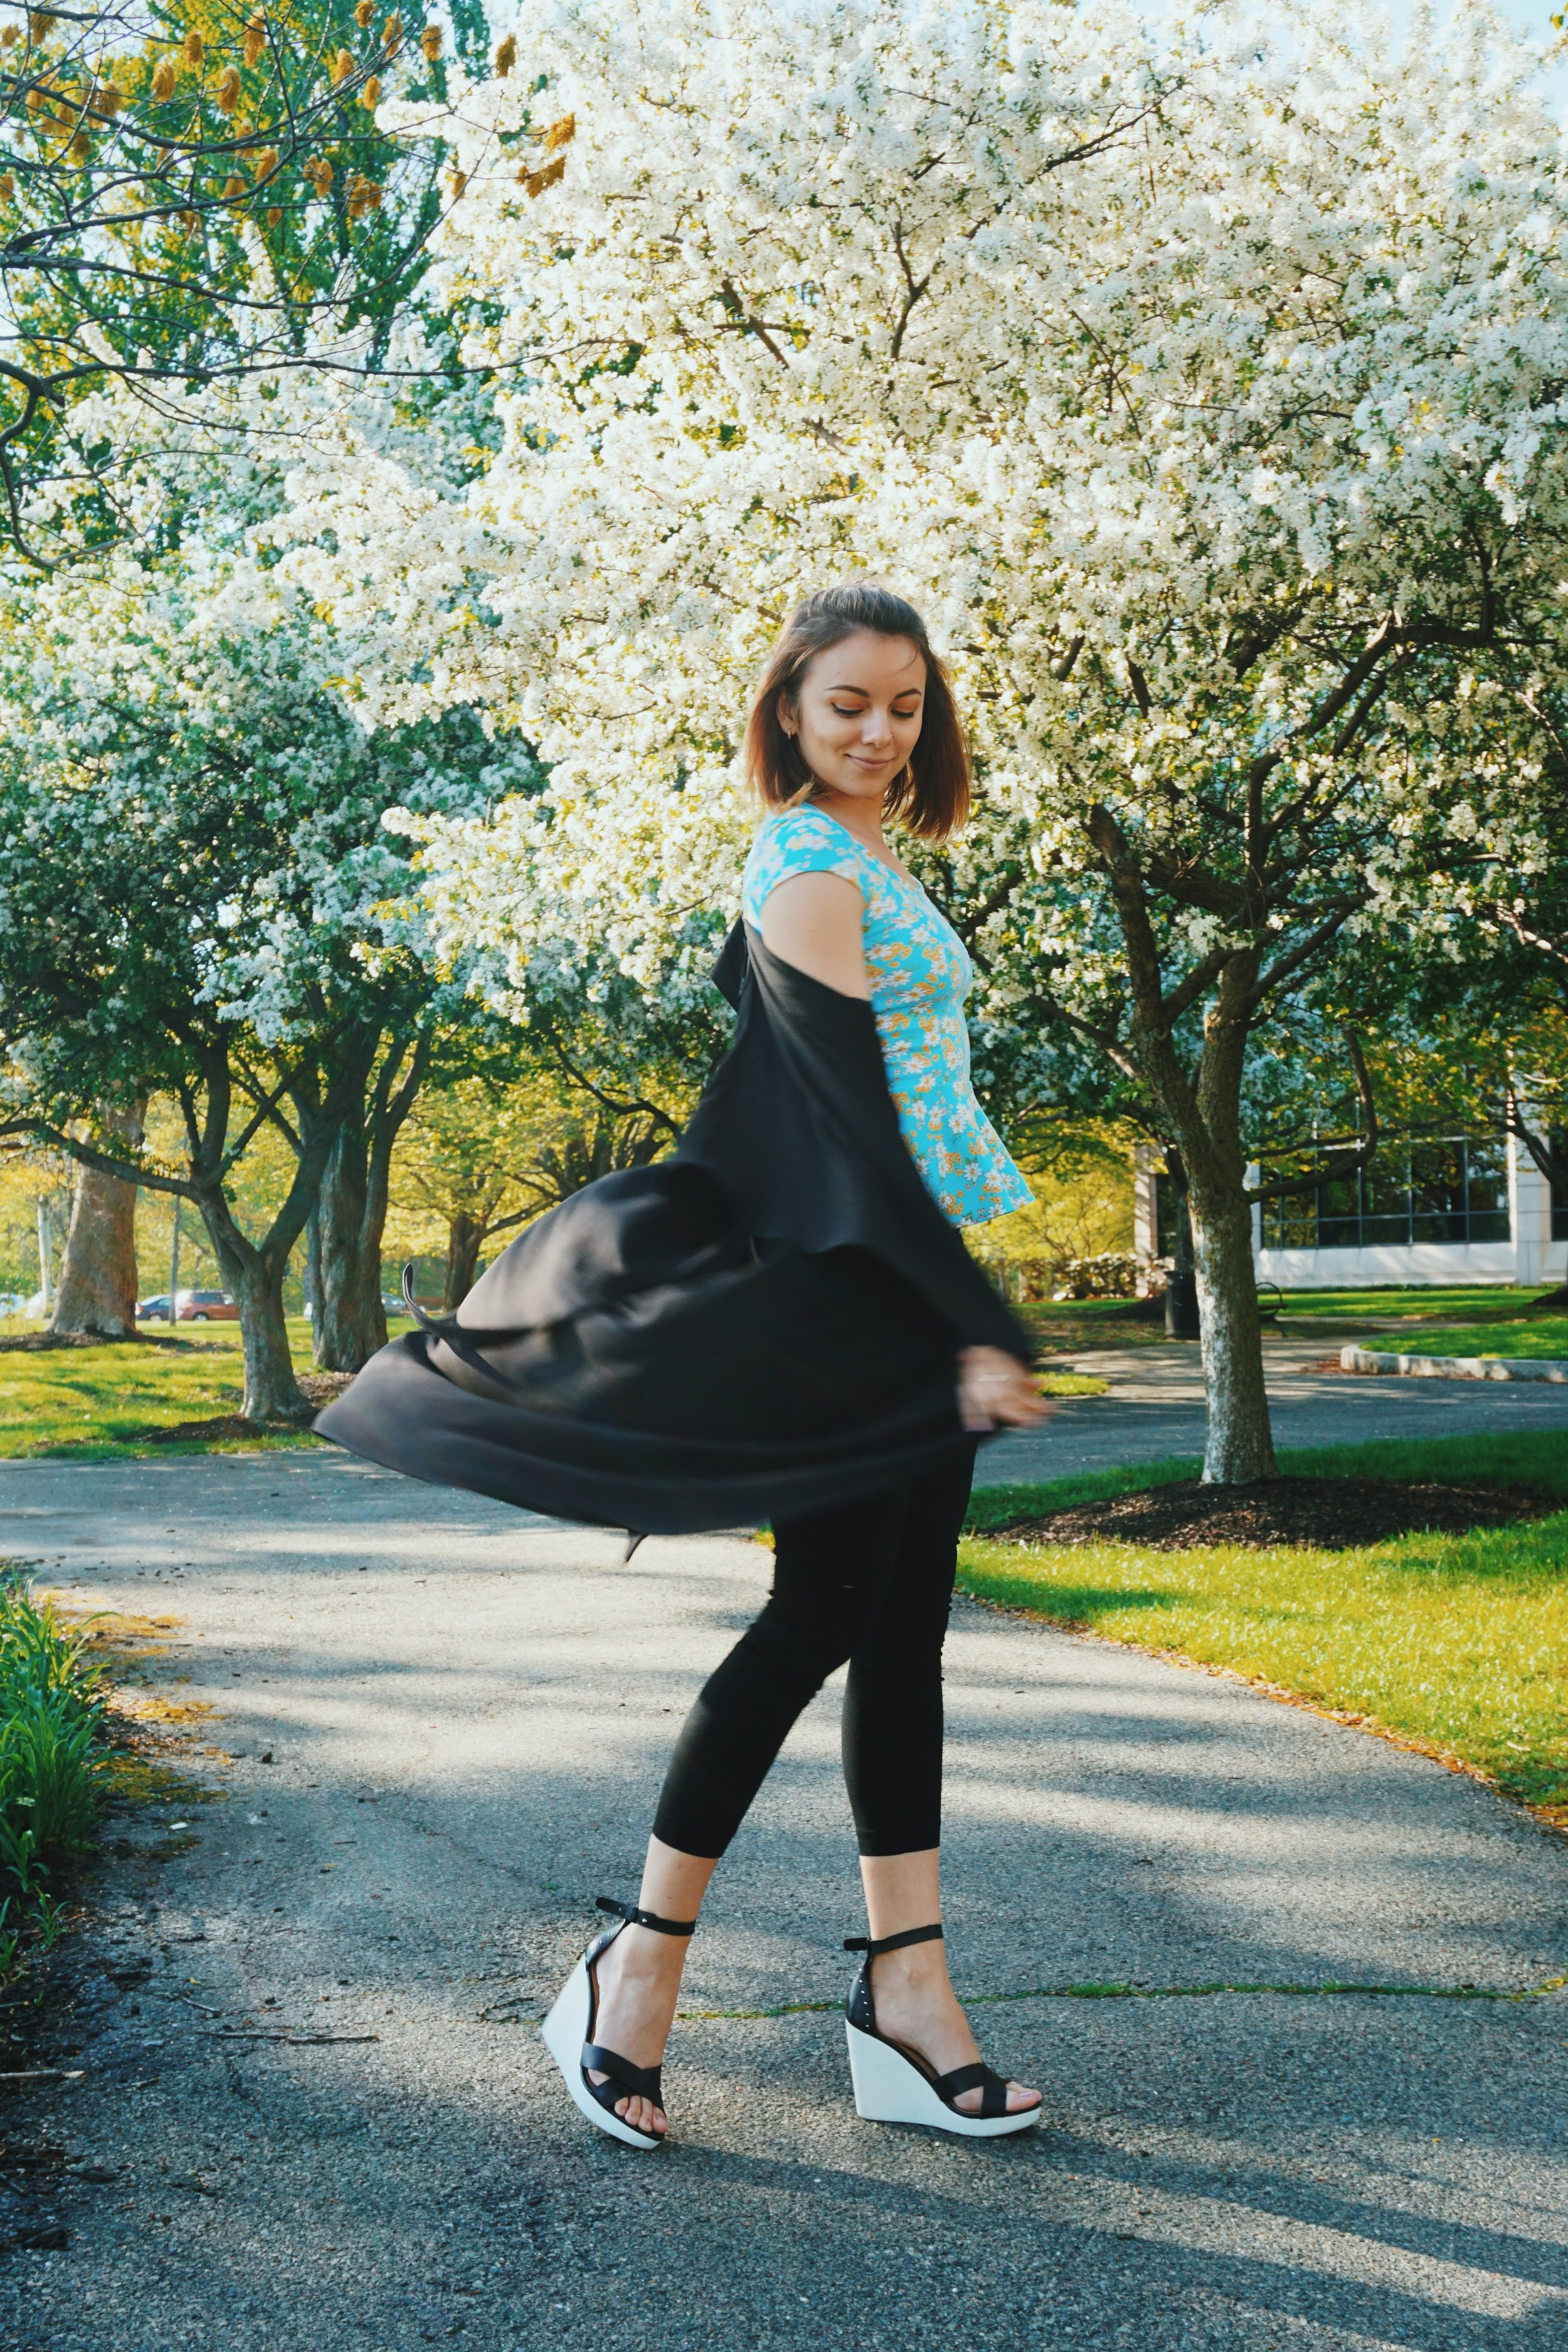 A photo of a fashion blogger twirling in a cute summer outfit.